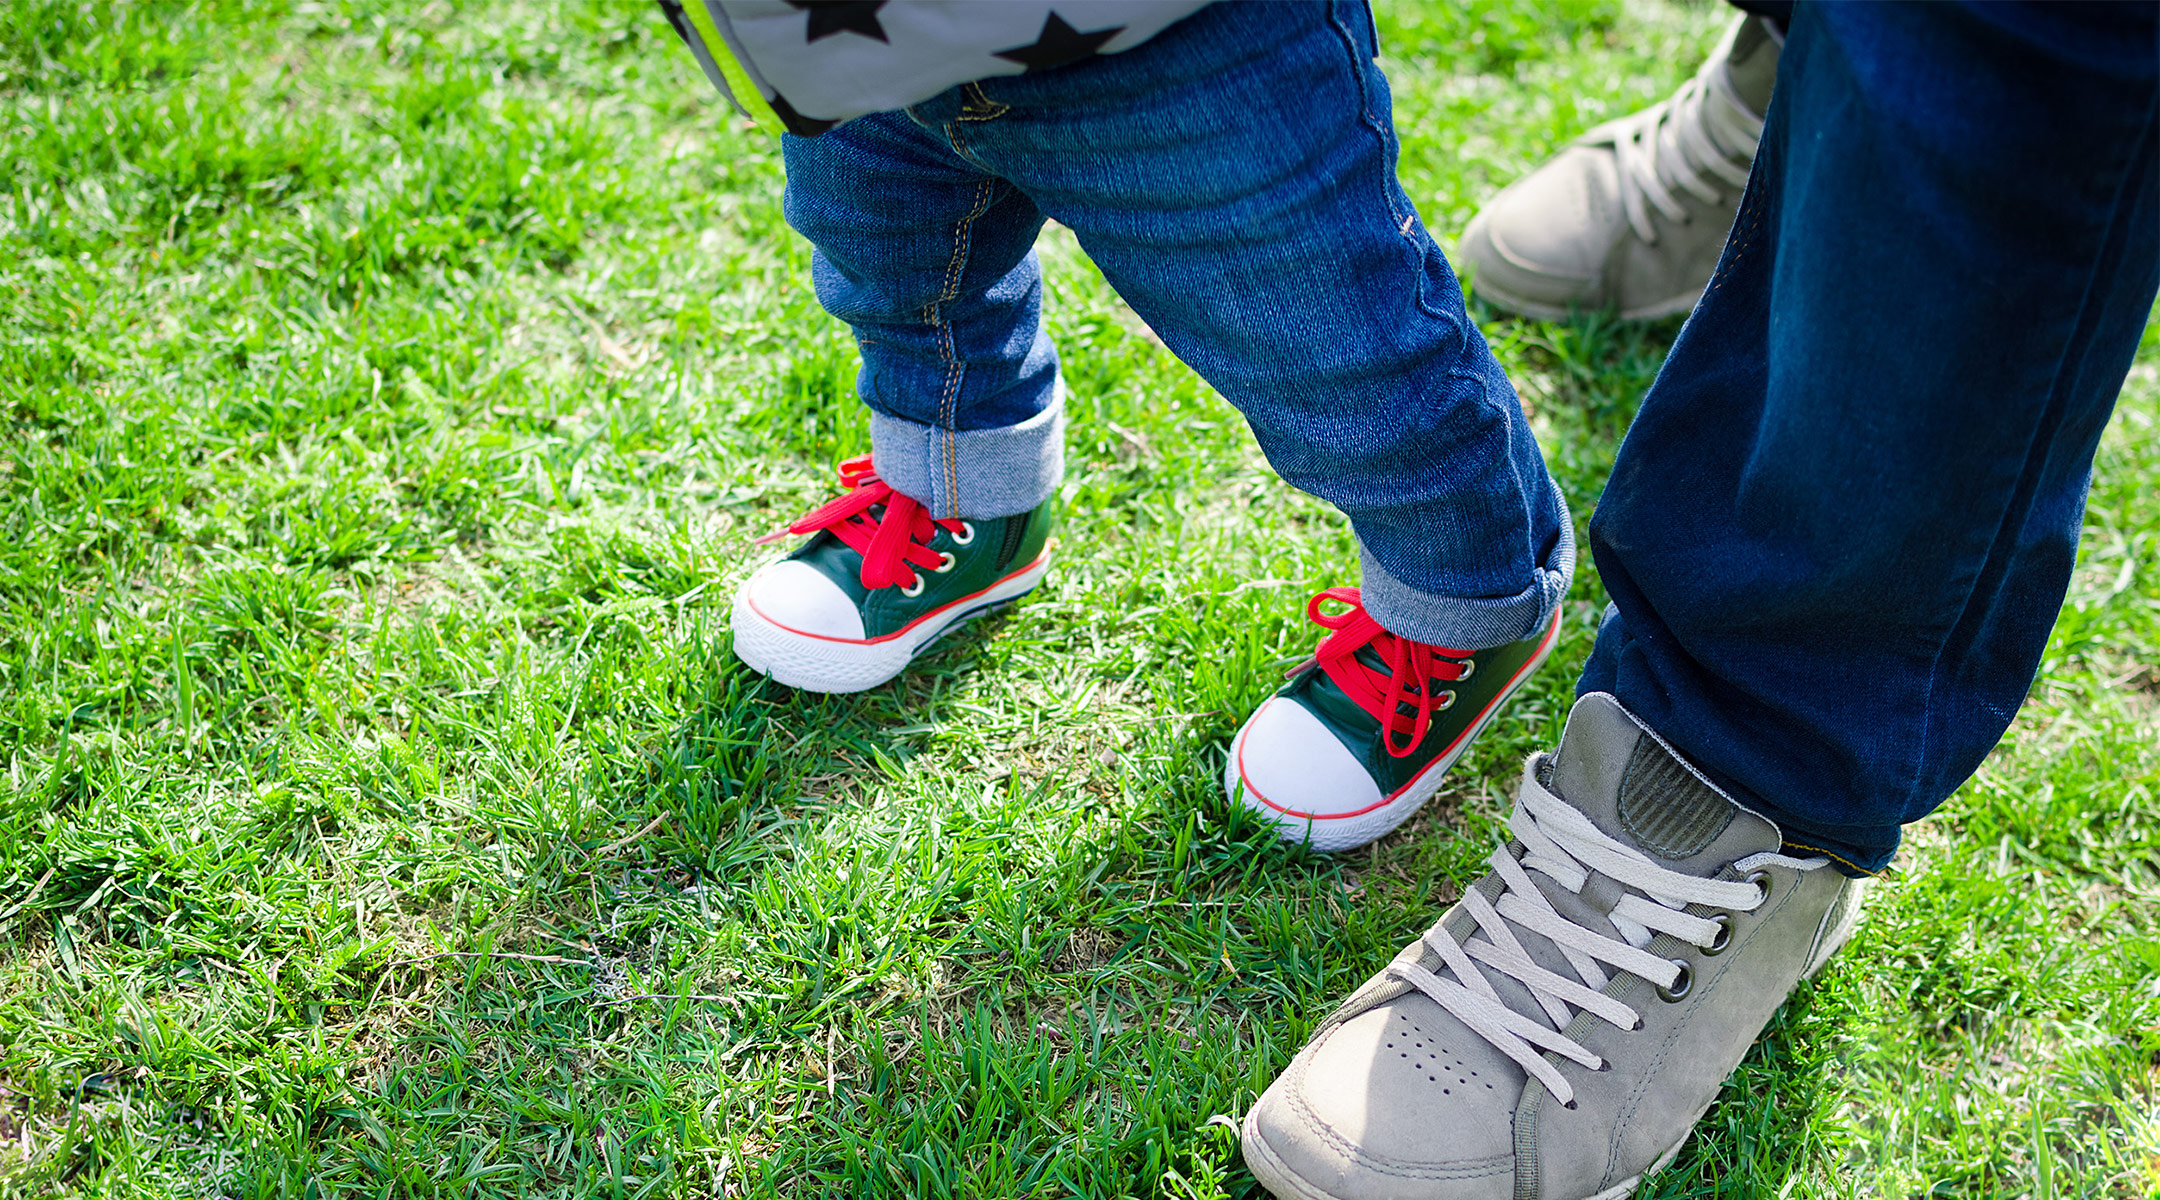 Newborn Shoes Vans 20 Baby Walking Shoes That Offer Style And Support